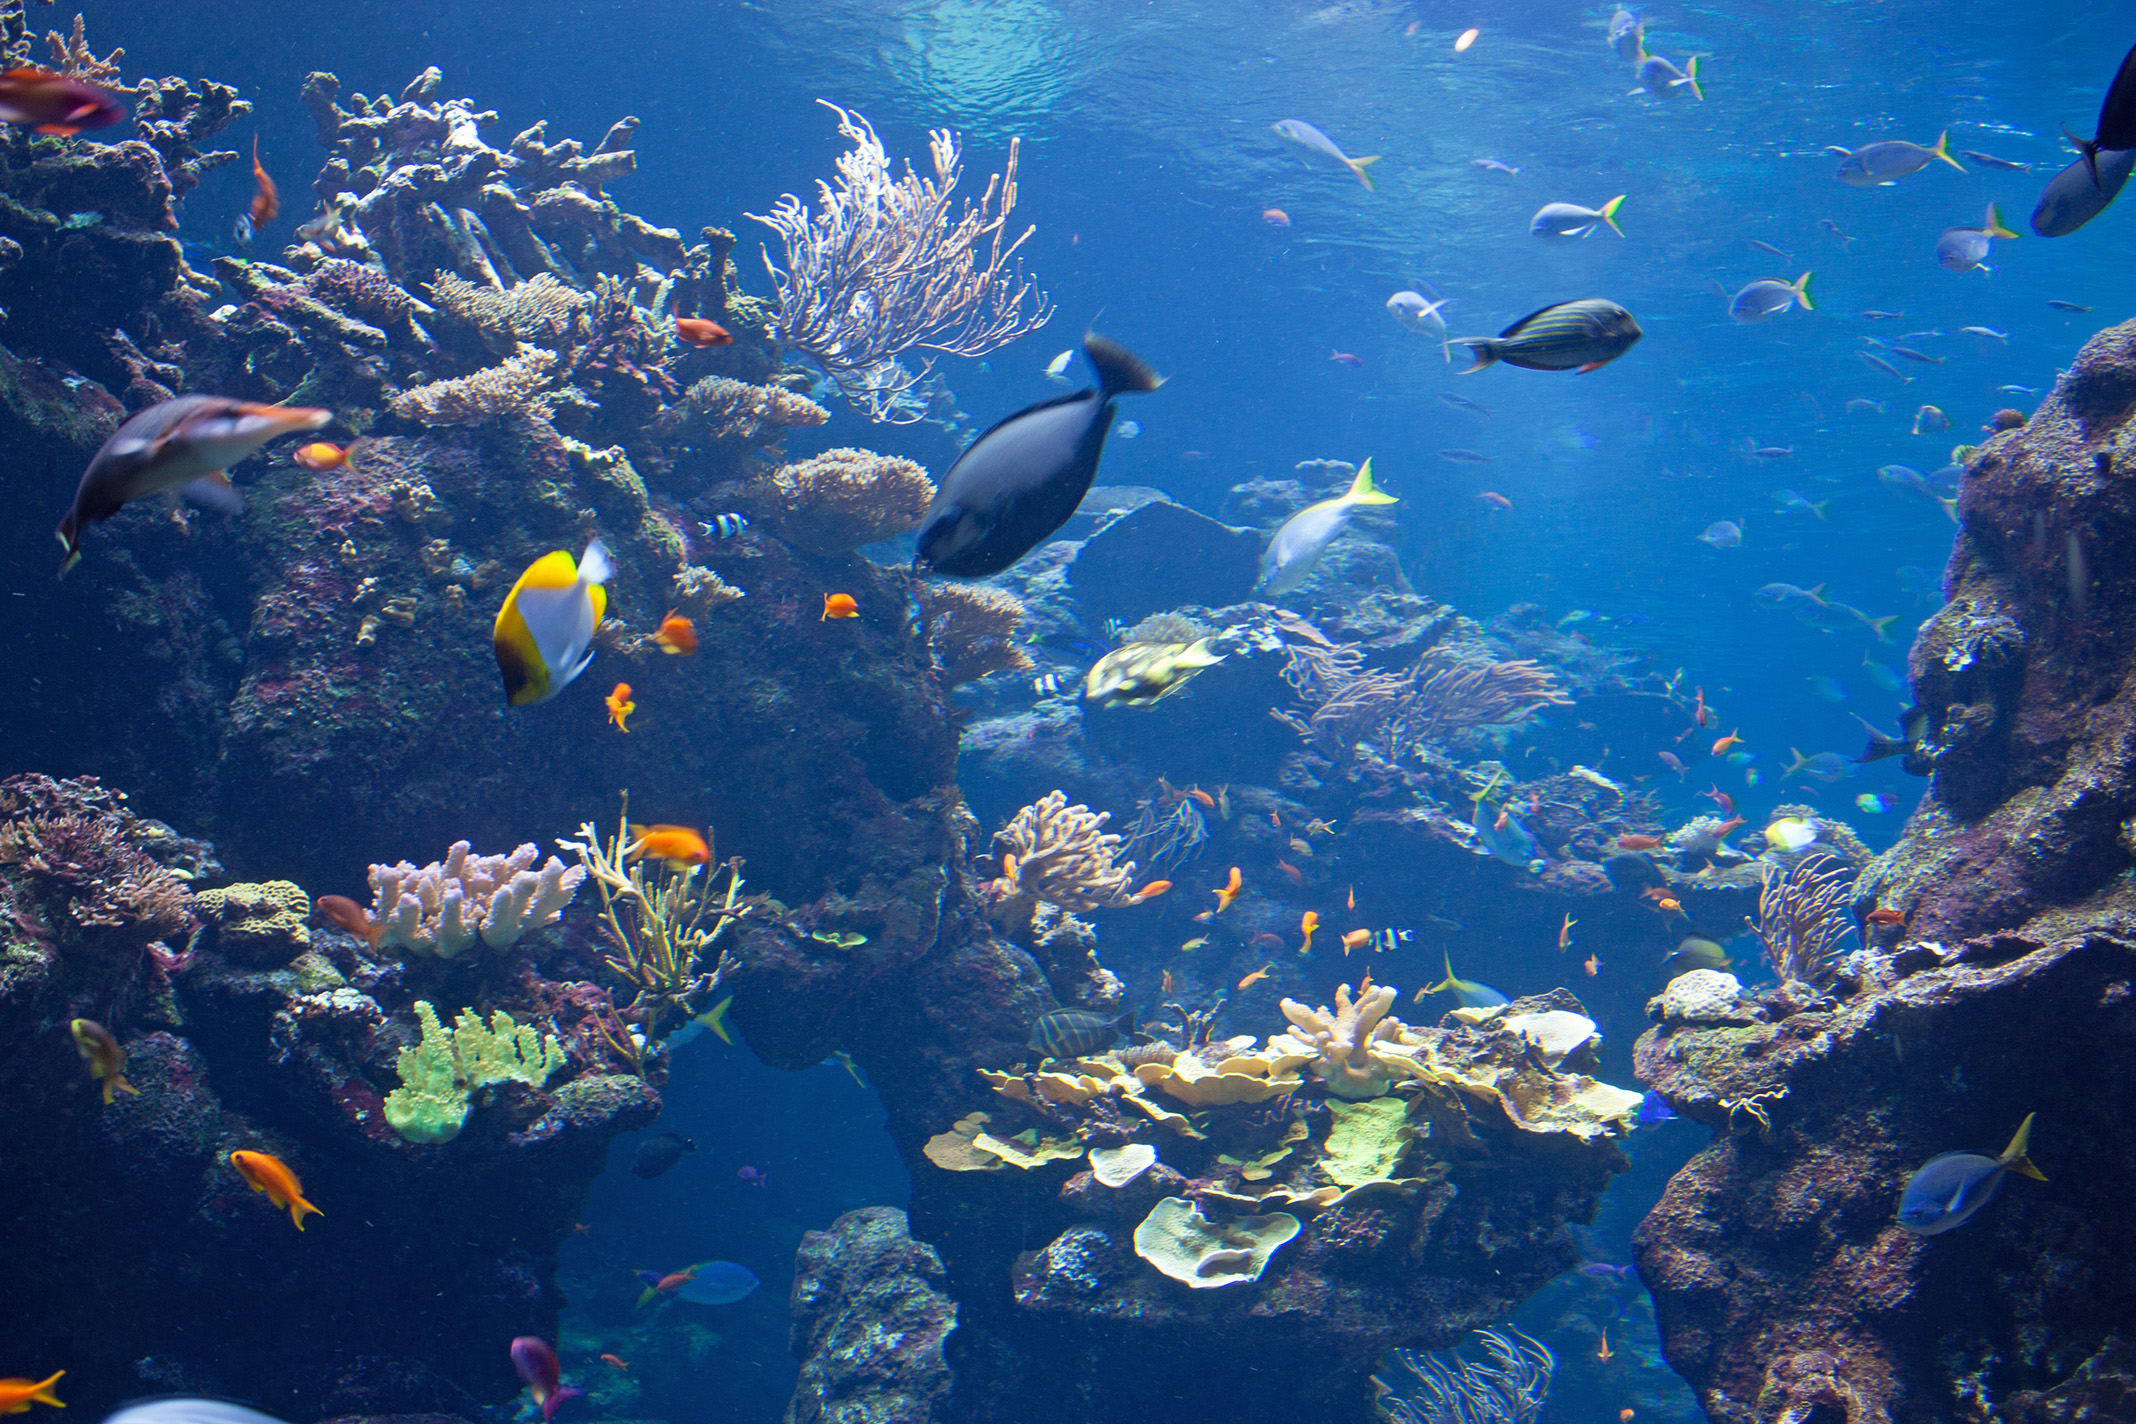 Tropical fish swimming under water, through undersea plant life and coral